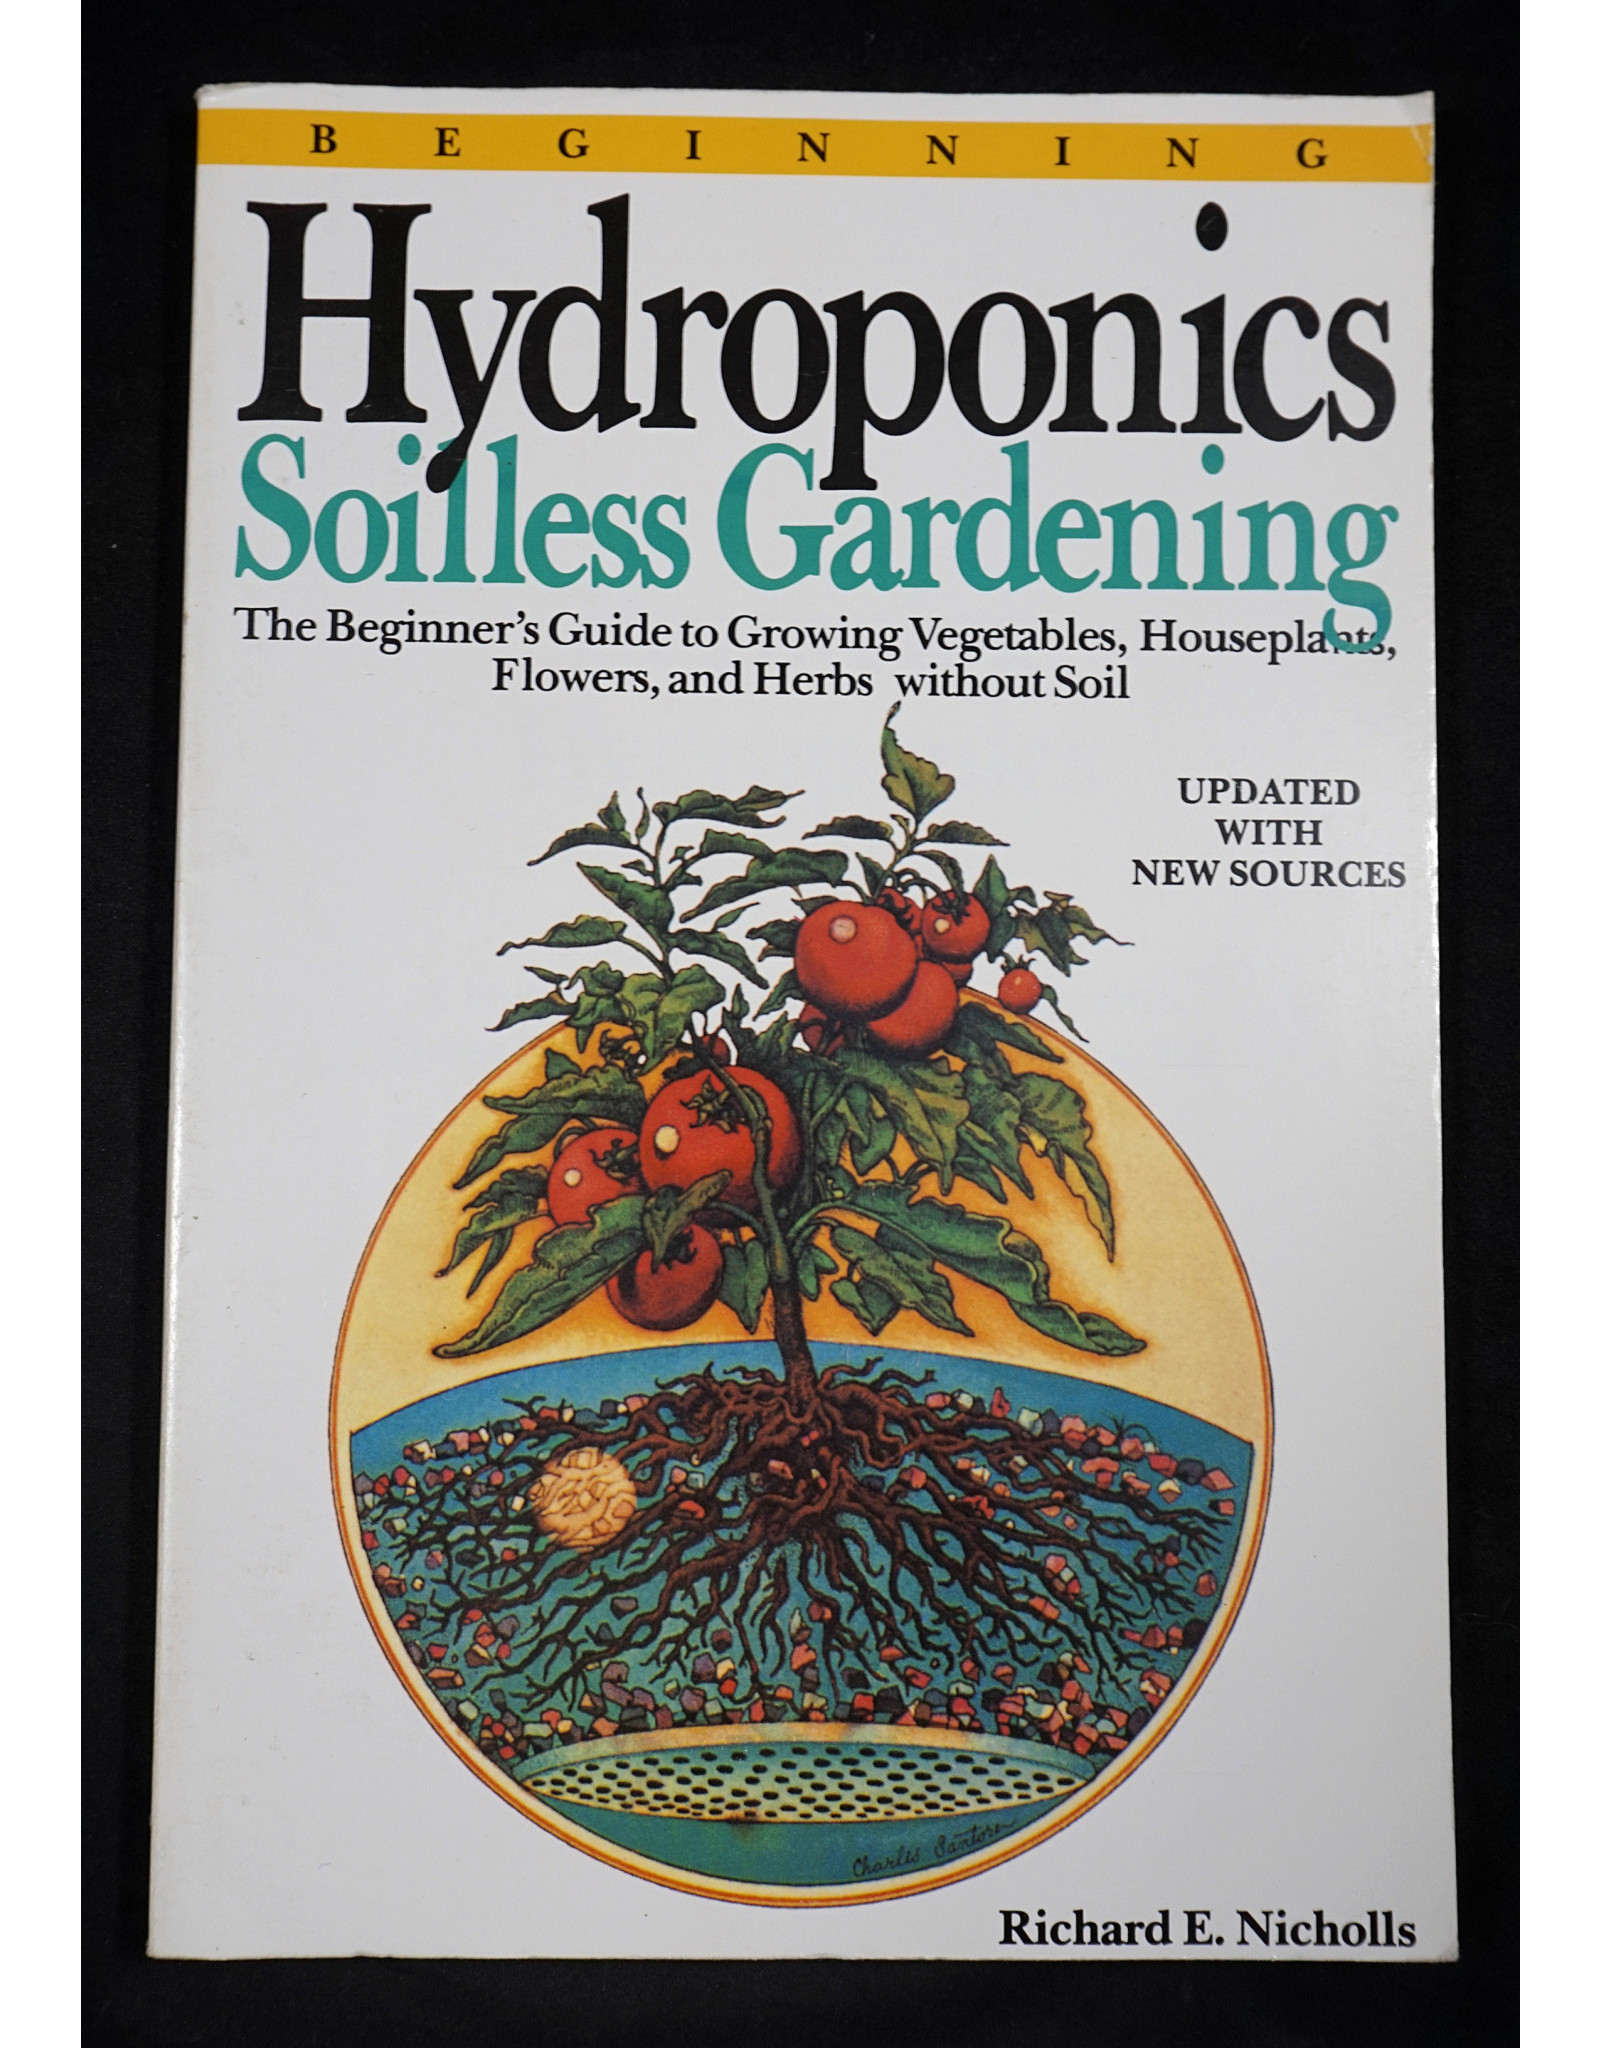 Hydroponics Soilless Gardening by Richard E. Nicholls